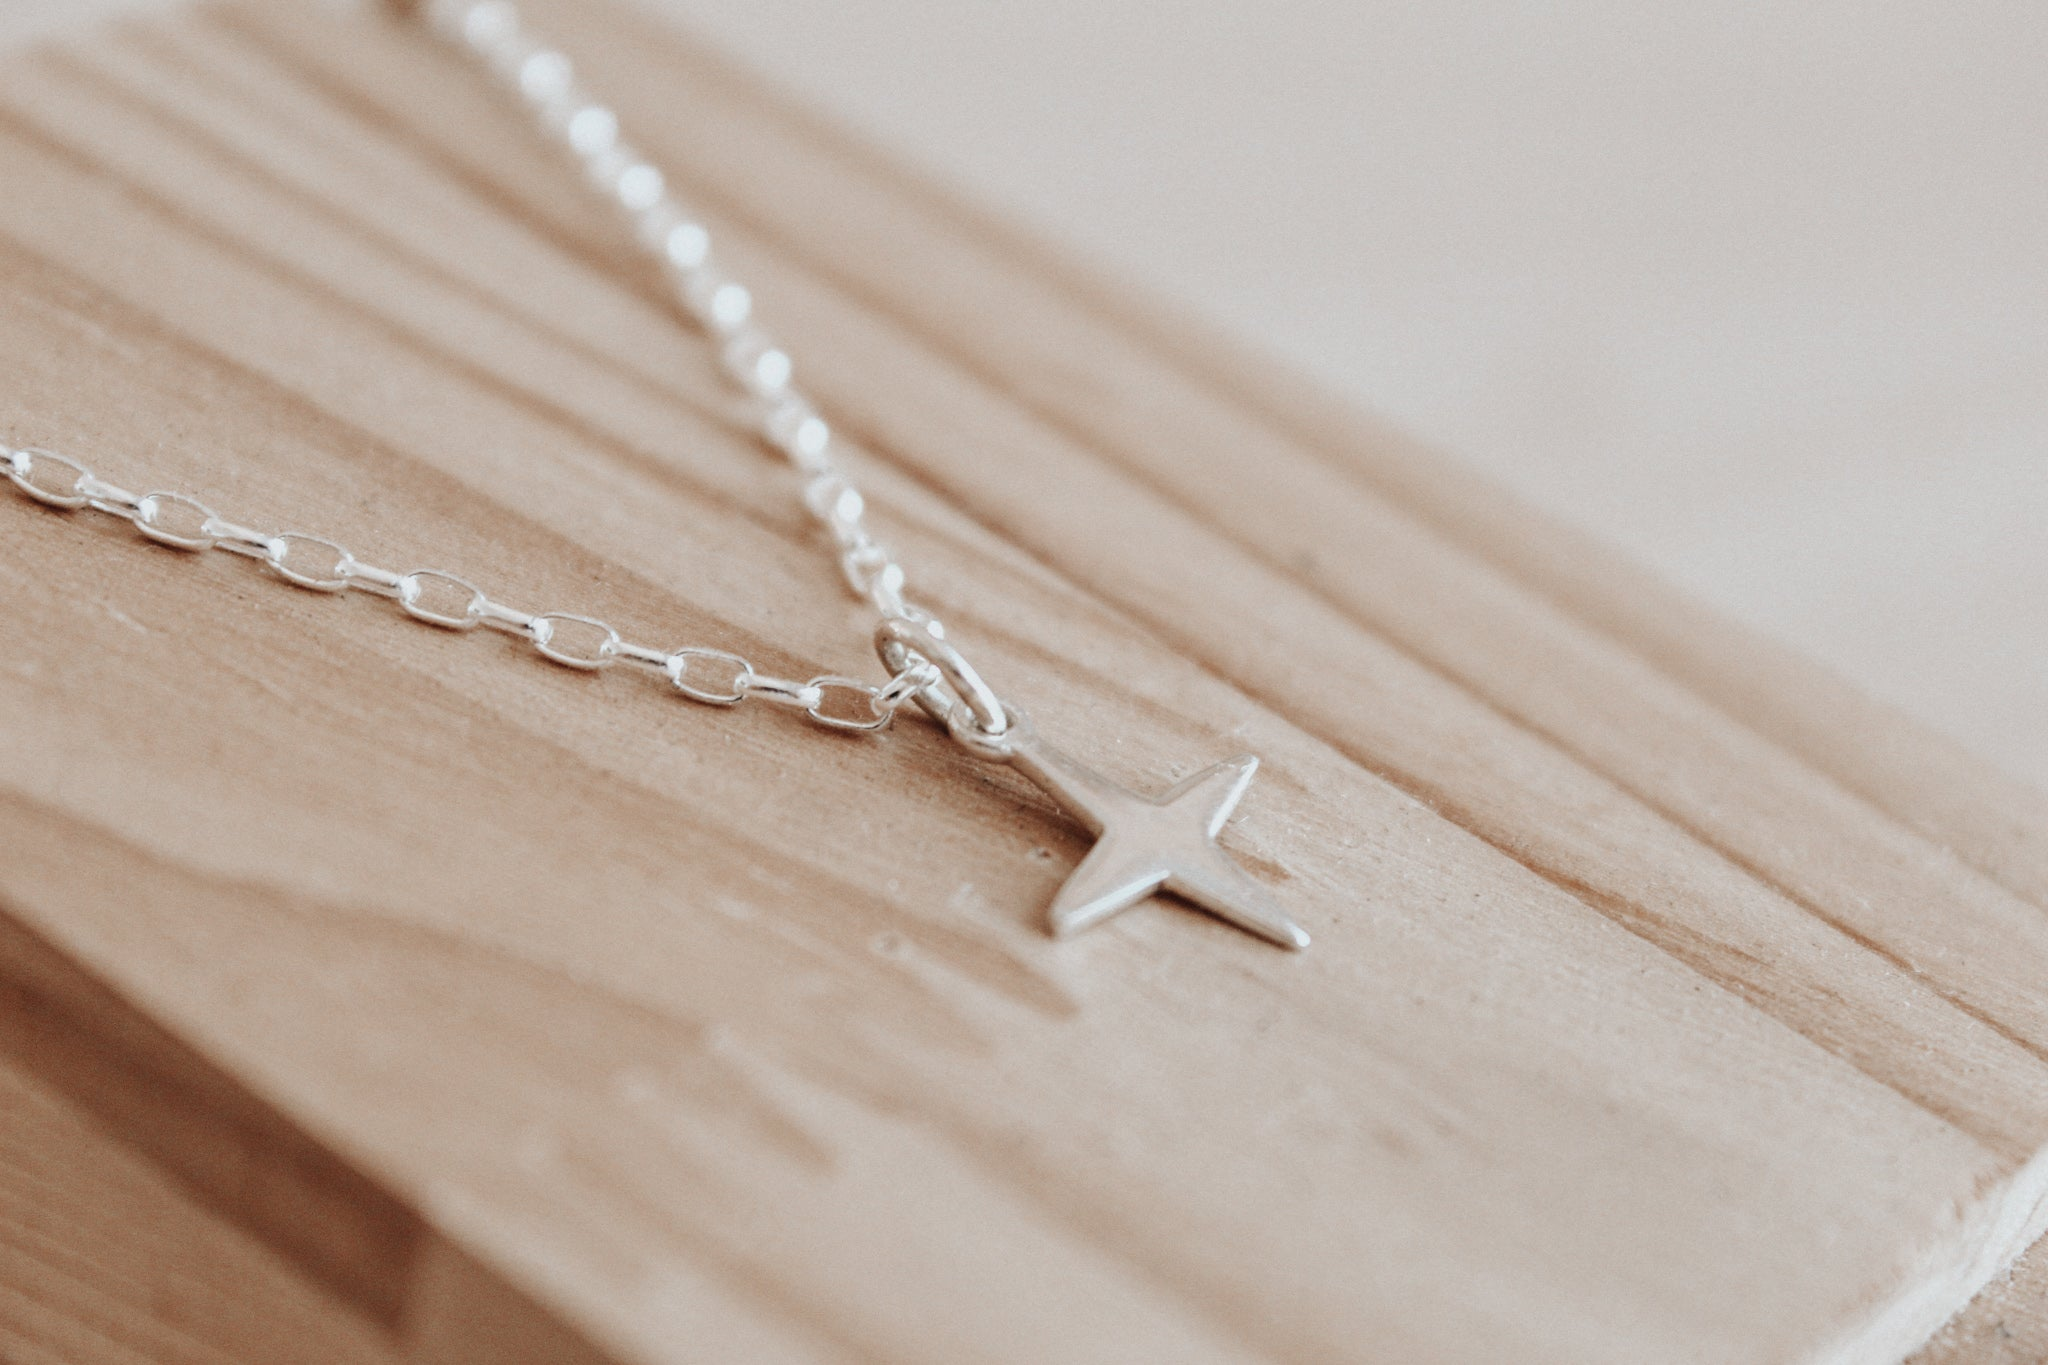 Southern Cross Silver Necklace